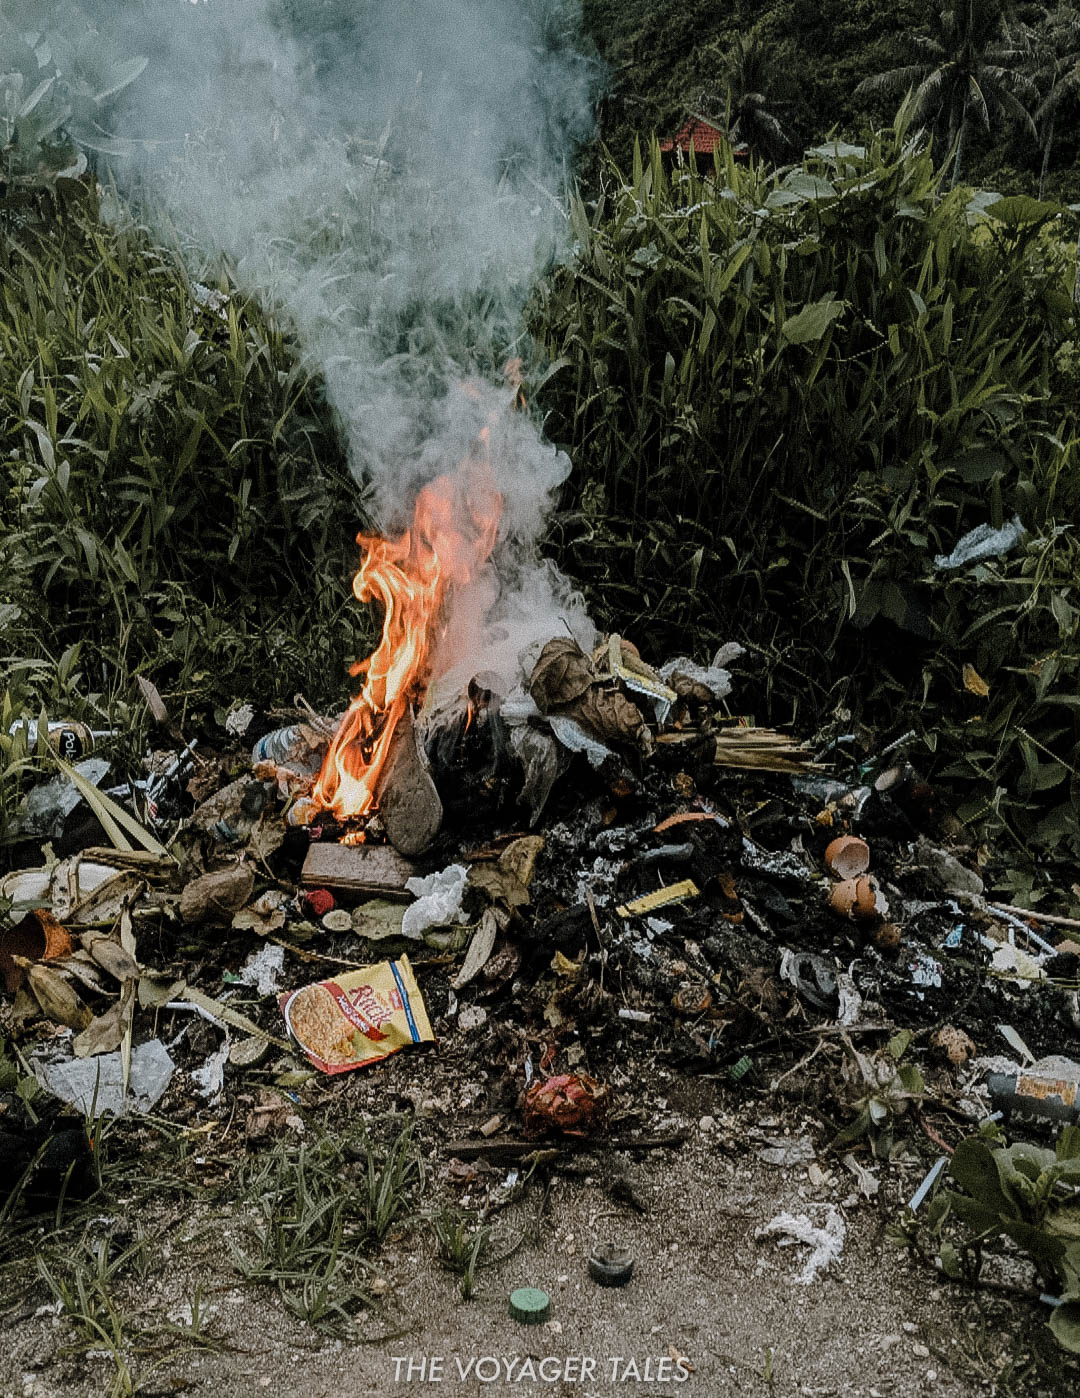 Without proper infrastructure in place to deal with the amount of trash produced, most locals resort to this, burning plastic and other waste. Yes, it 'gets rid of it', but the harmful chemicals produced in burning plastic are then released into the air we breath, creating more health and environmental issues.